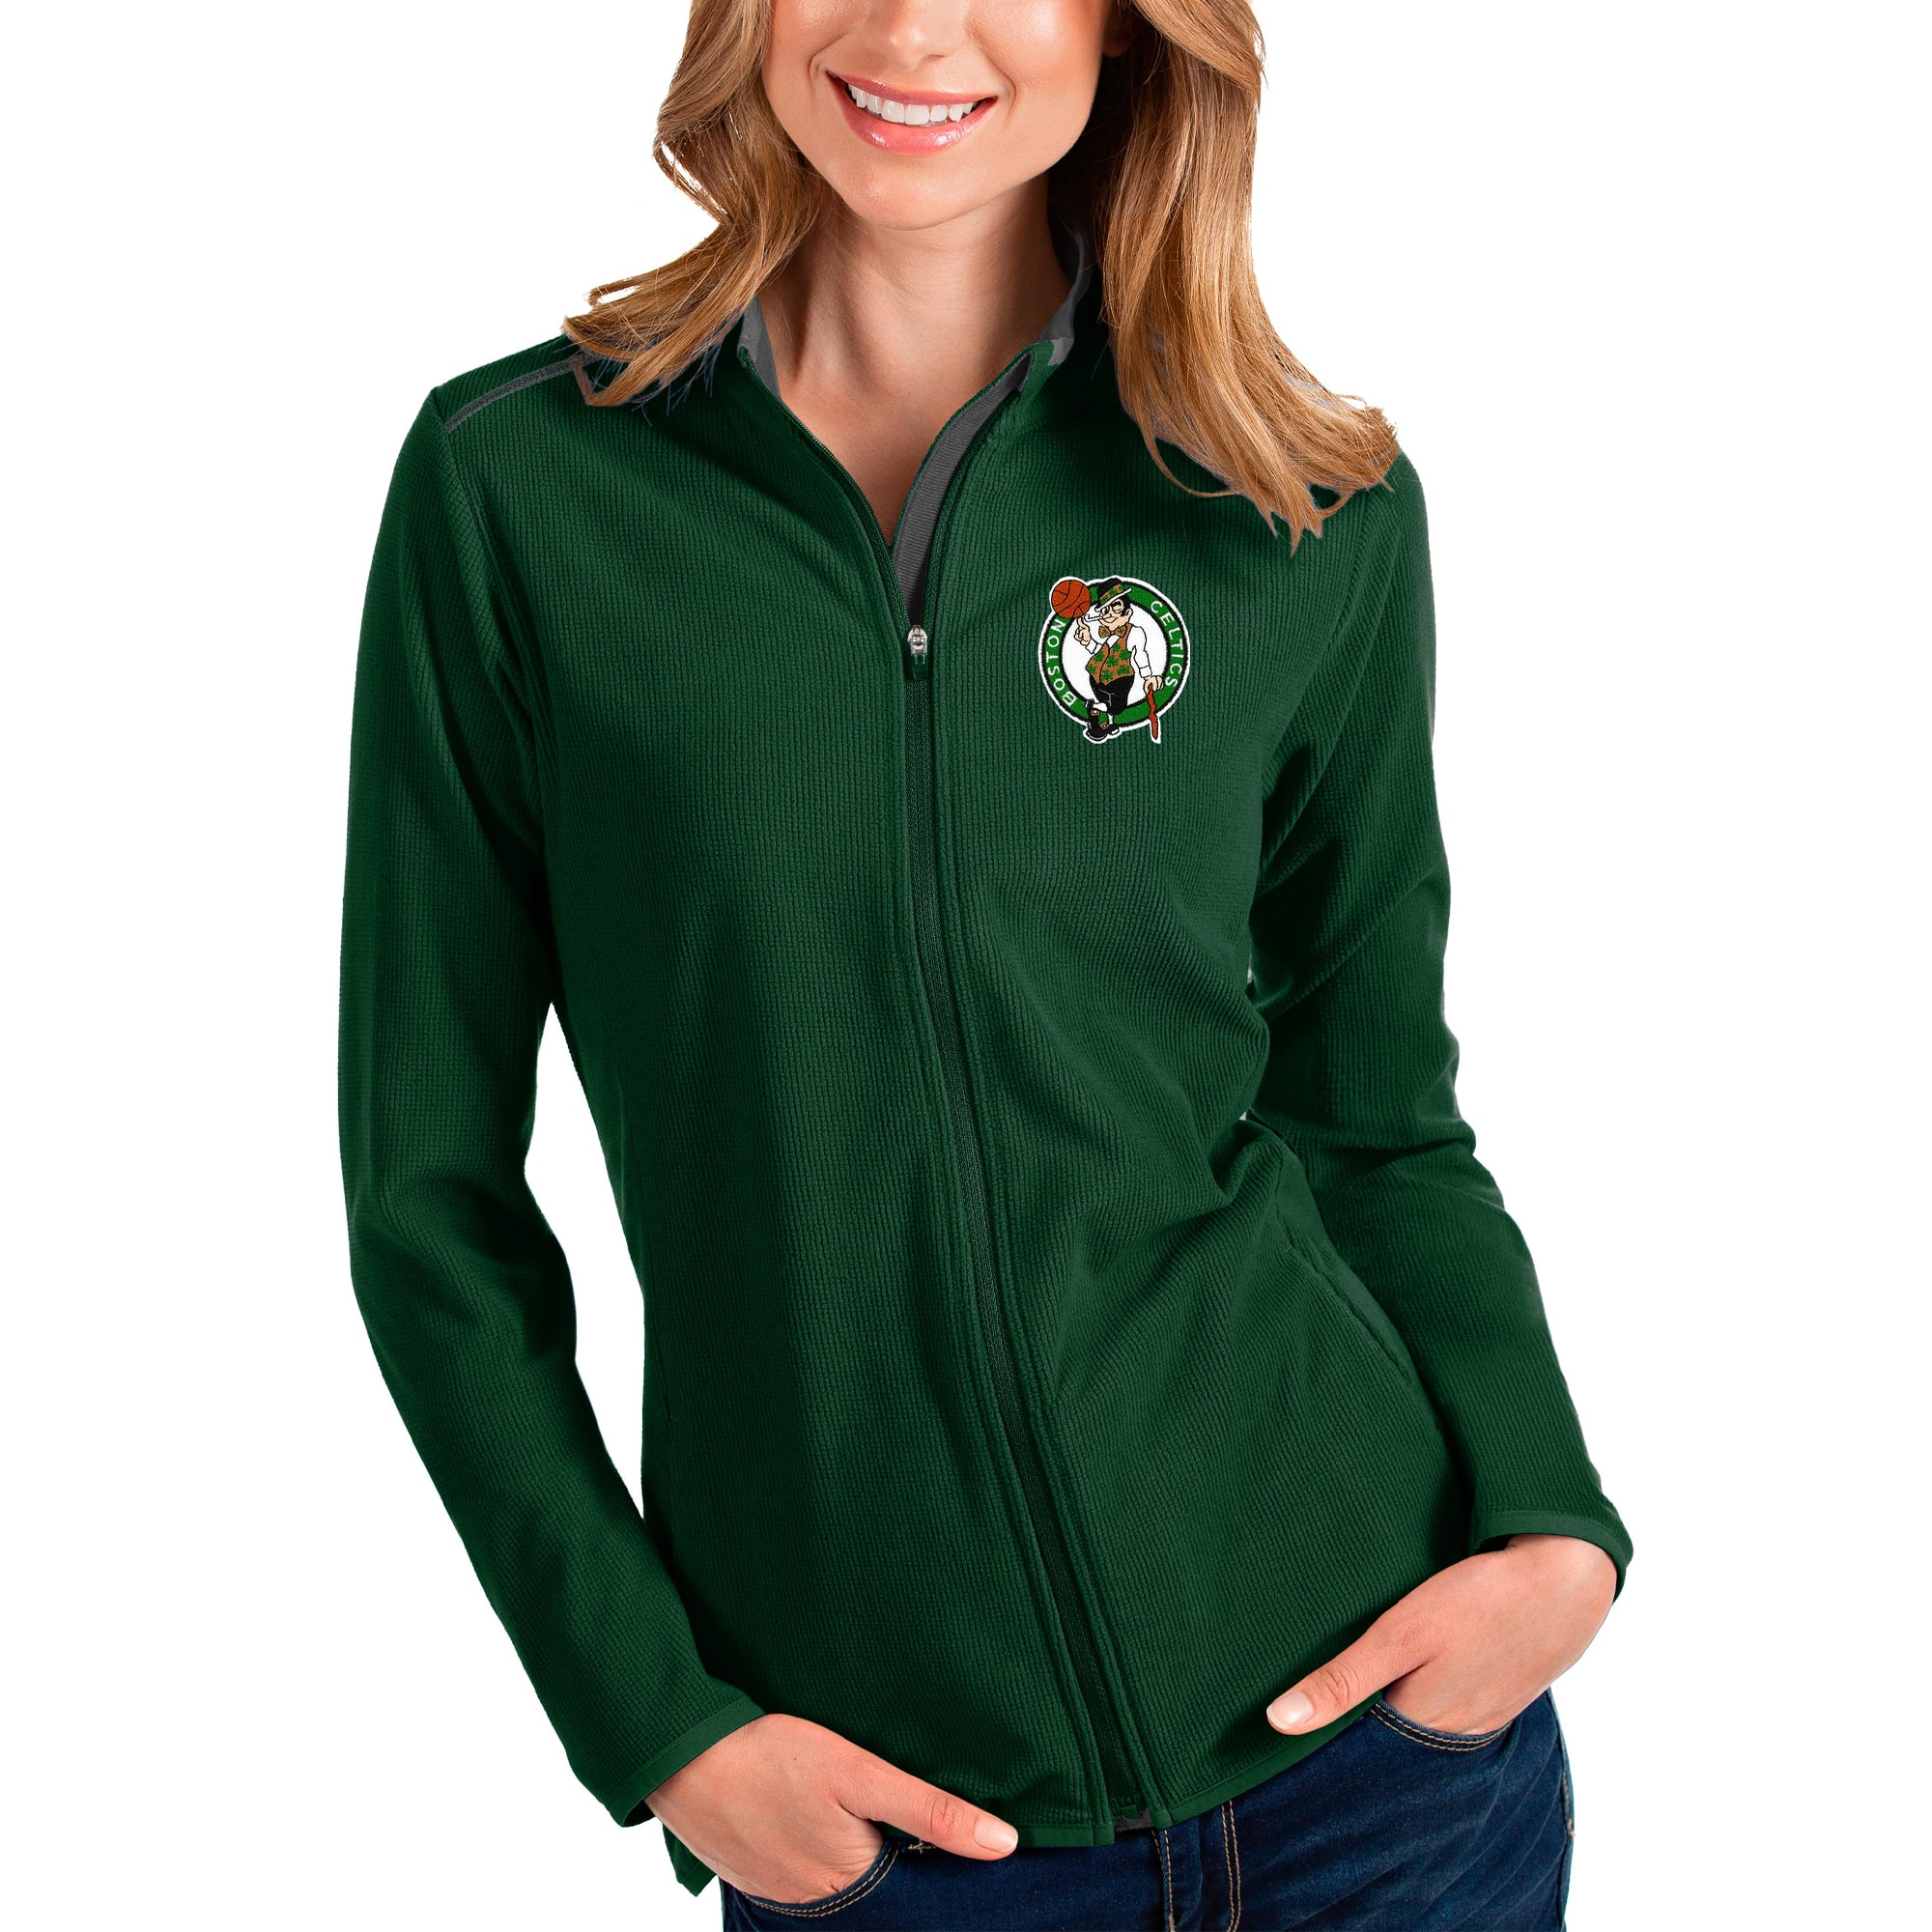 Boston Celtics Antigua Women's Glacier Full-Zip Jacket - Green/Gray